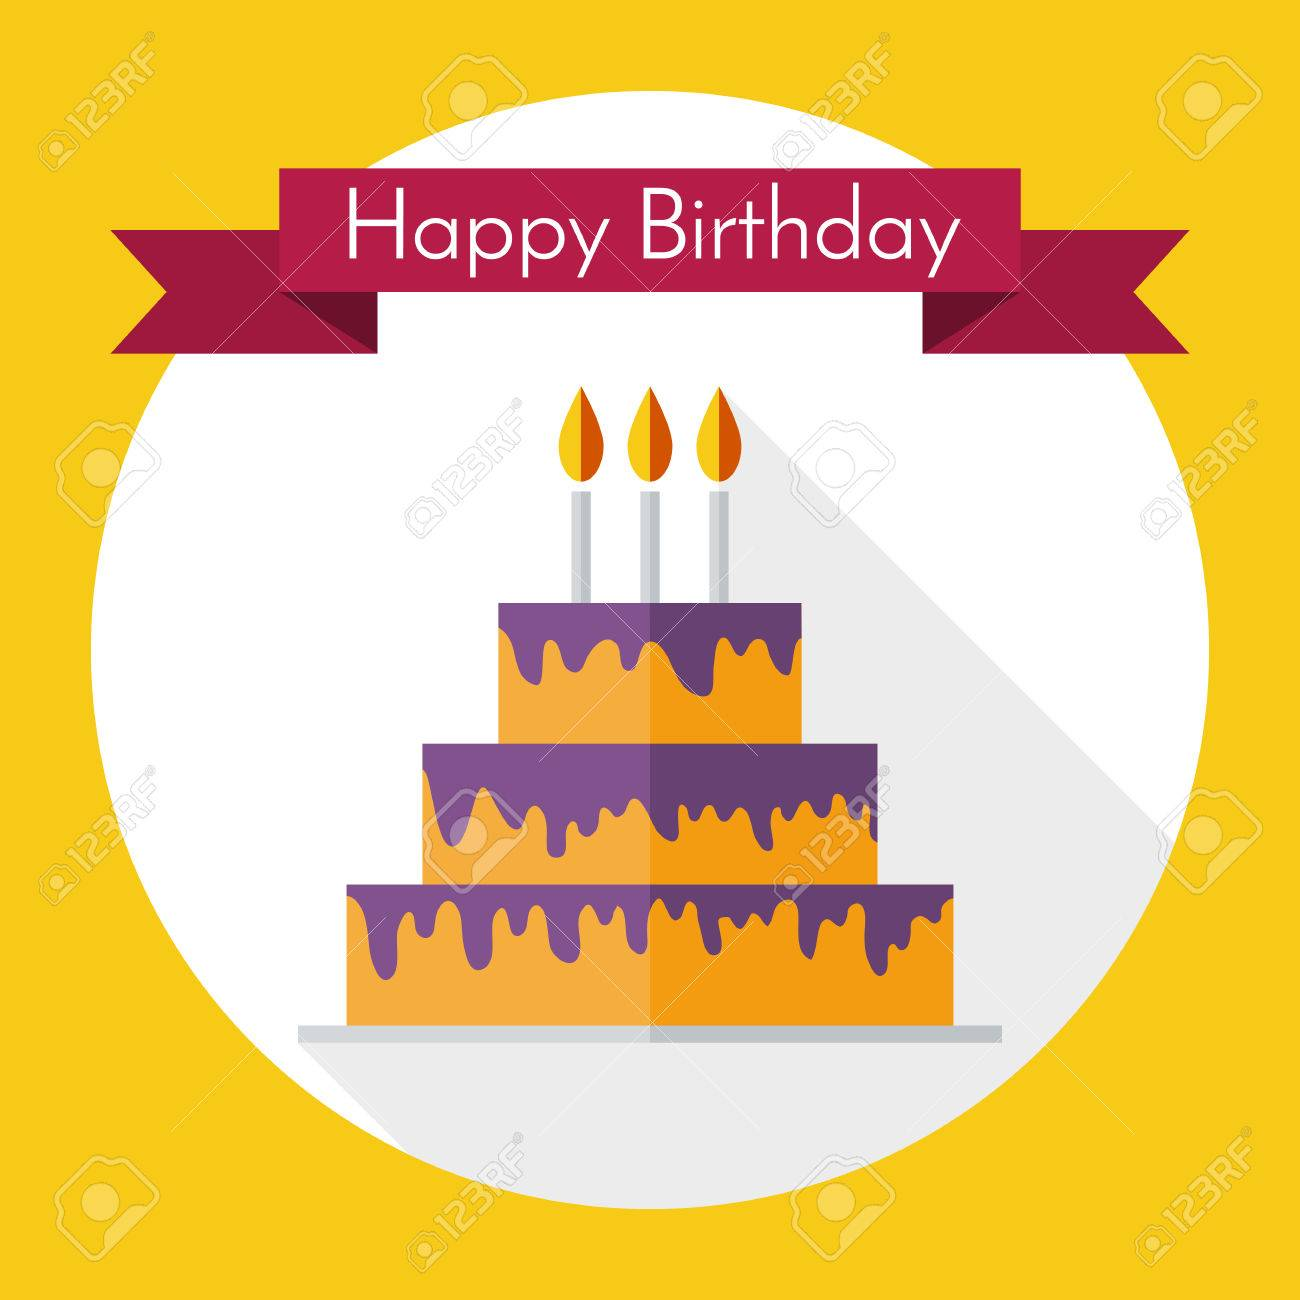 Birthday Cake In Flat Style Royalty Free Cliparts Vectors And